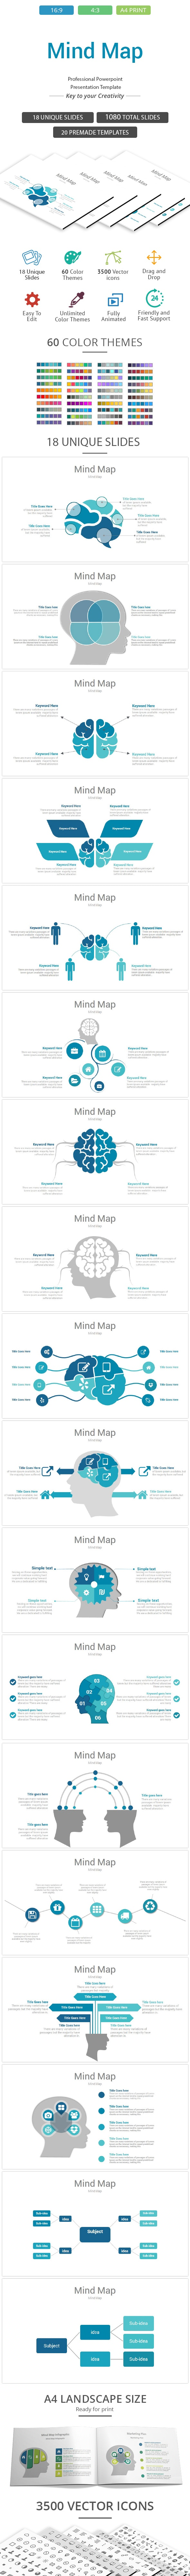 Mind Map PowerPoint Presentation Template - Business PowerPoint Templates